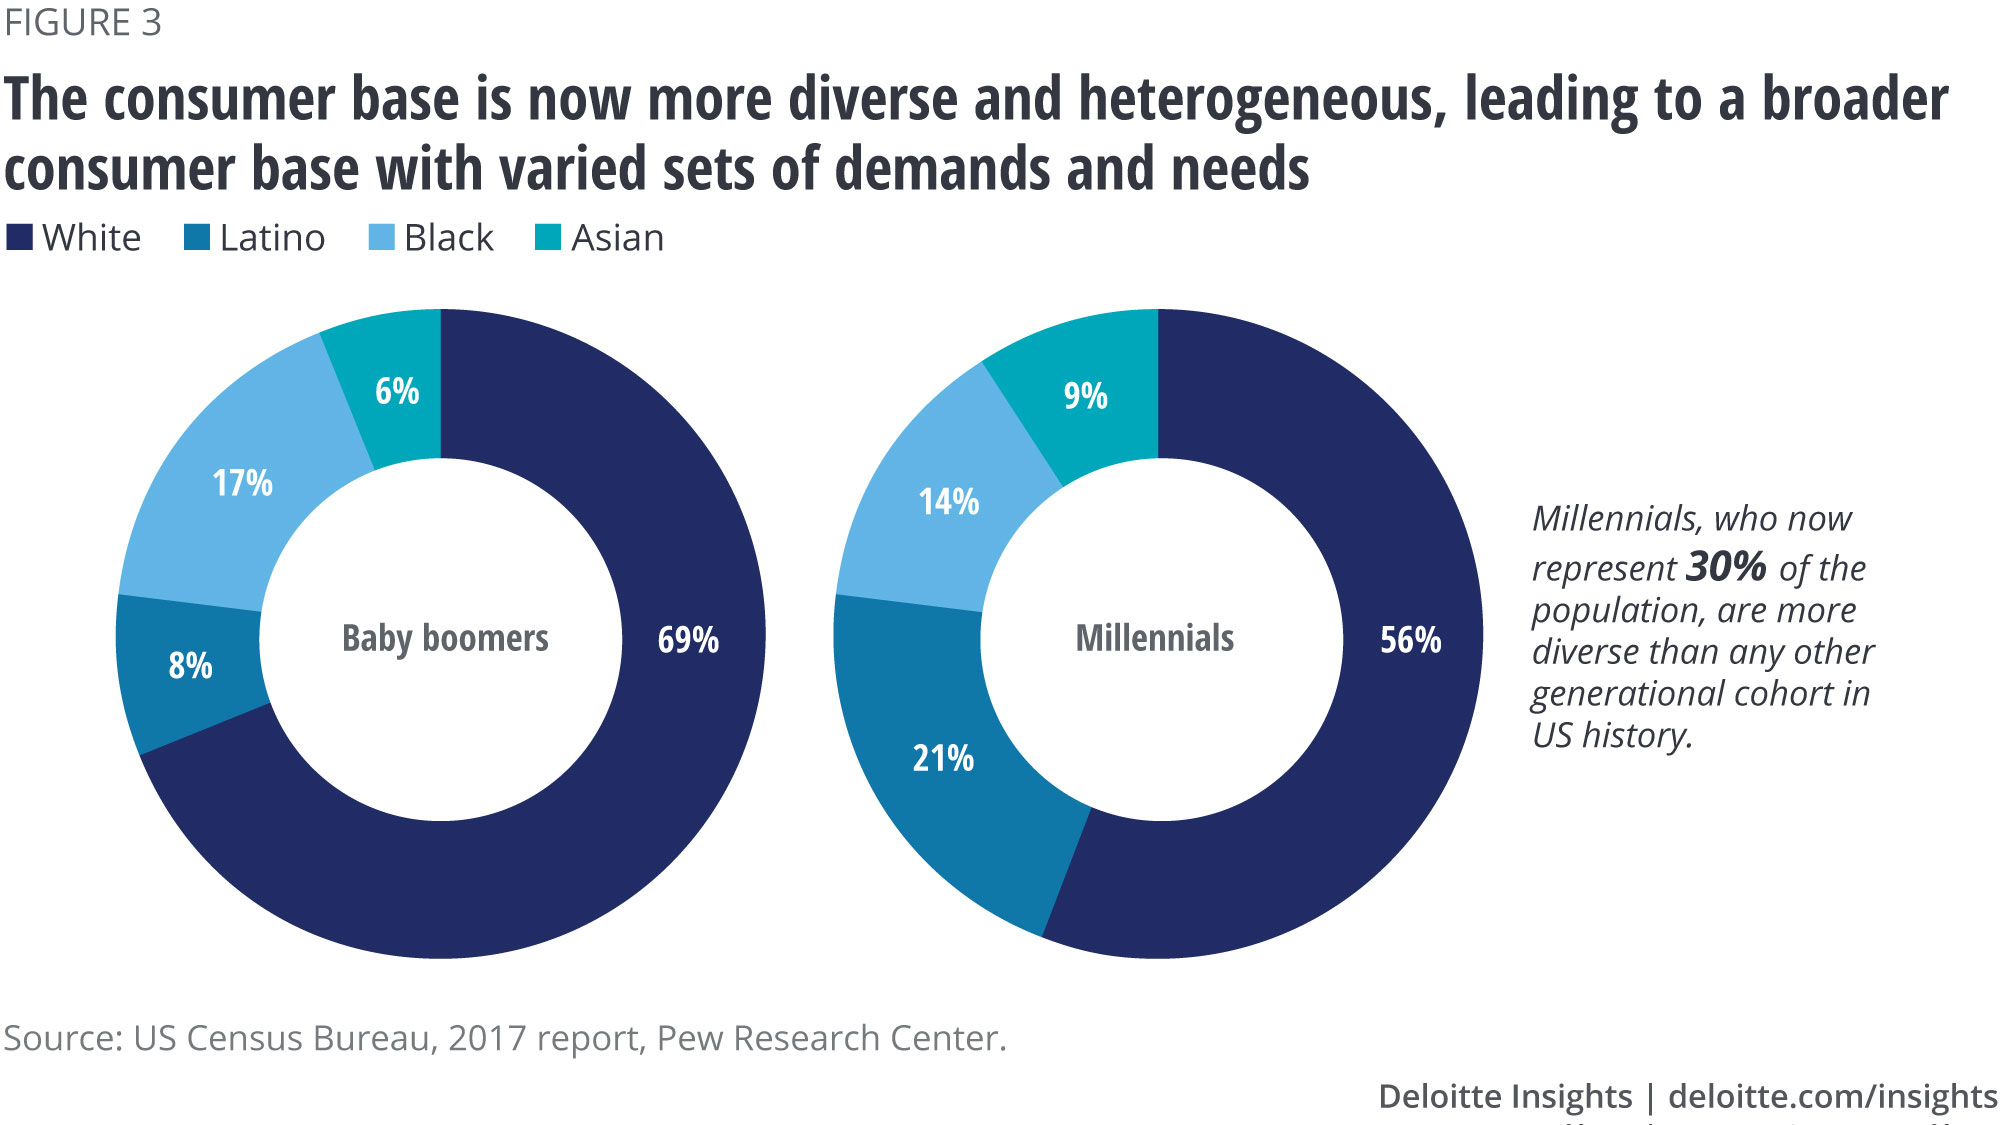 The consumer base is now more diverse and heterogeneous, leading to a broader consumer base with varied sets of demands and needs